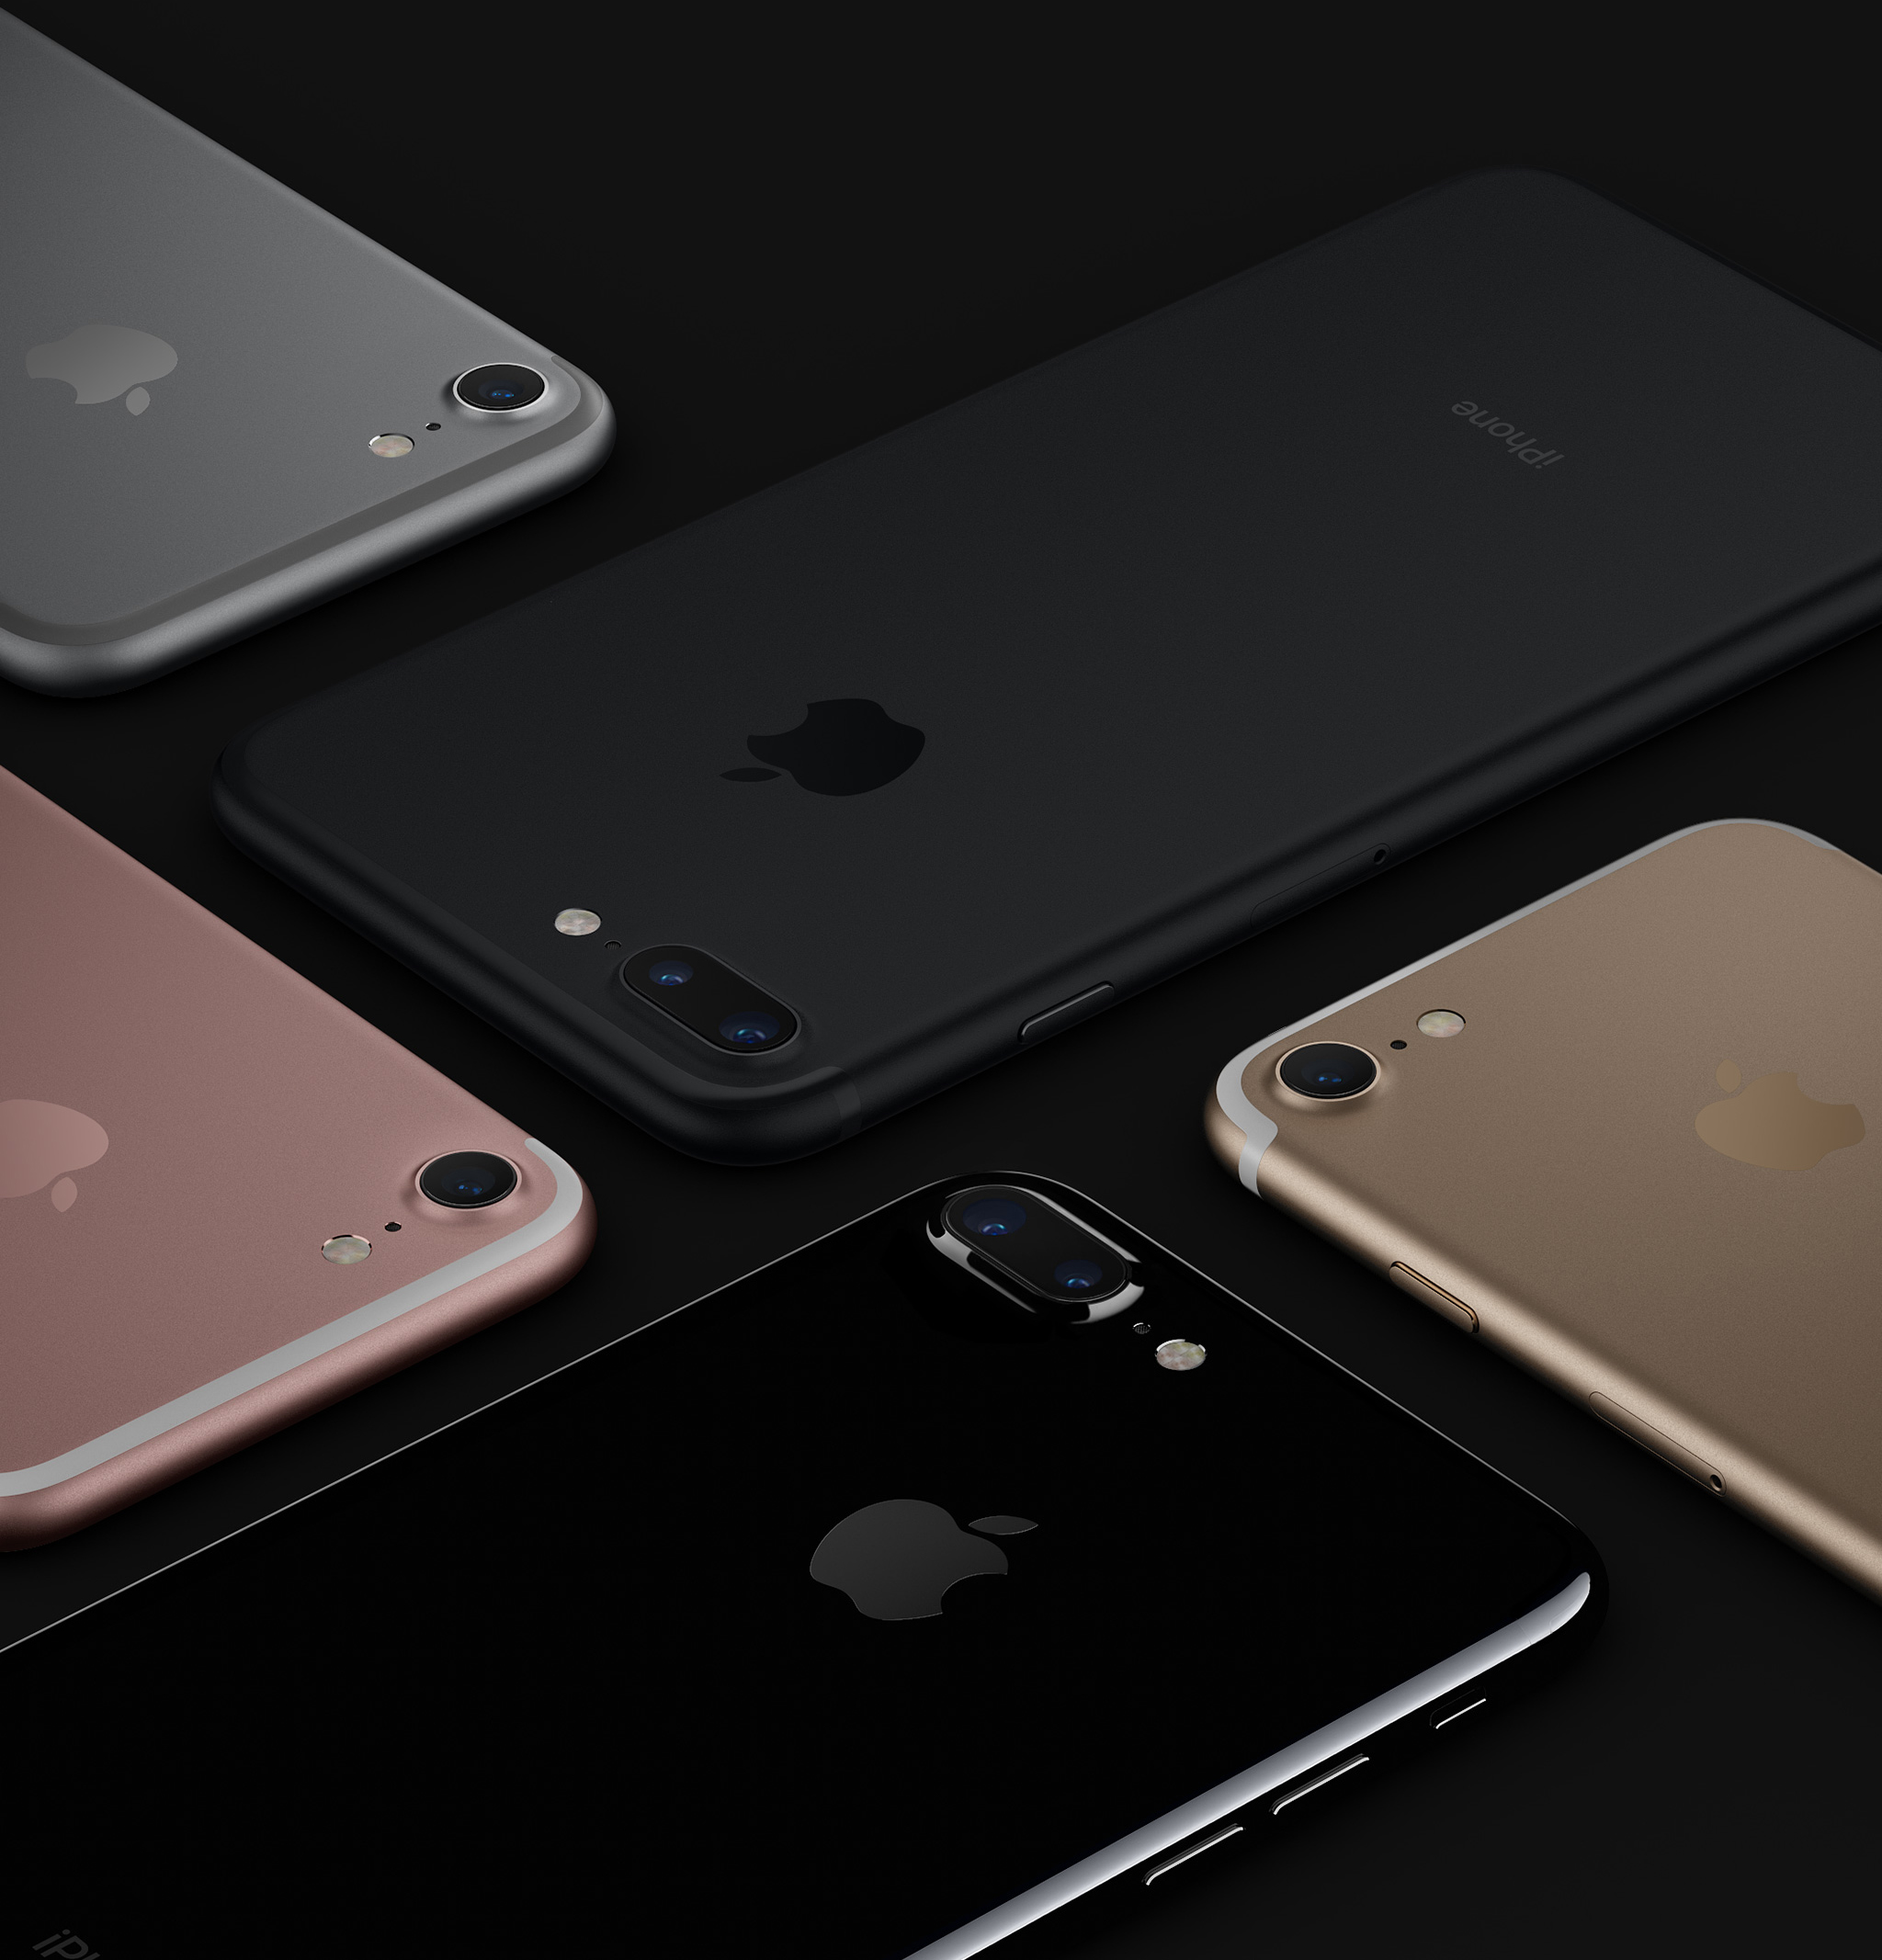 Venta De Moviles Libres Online Baratos Iphone 7 En Garbarino